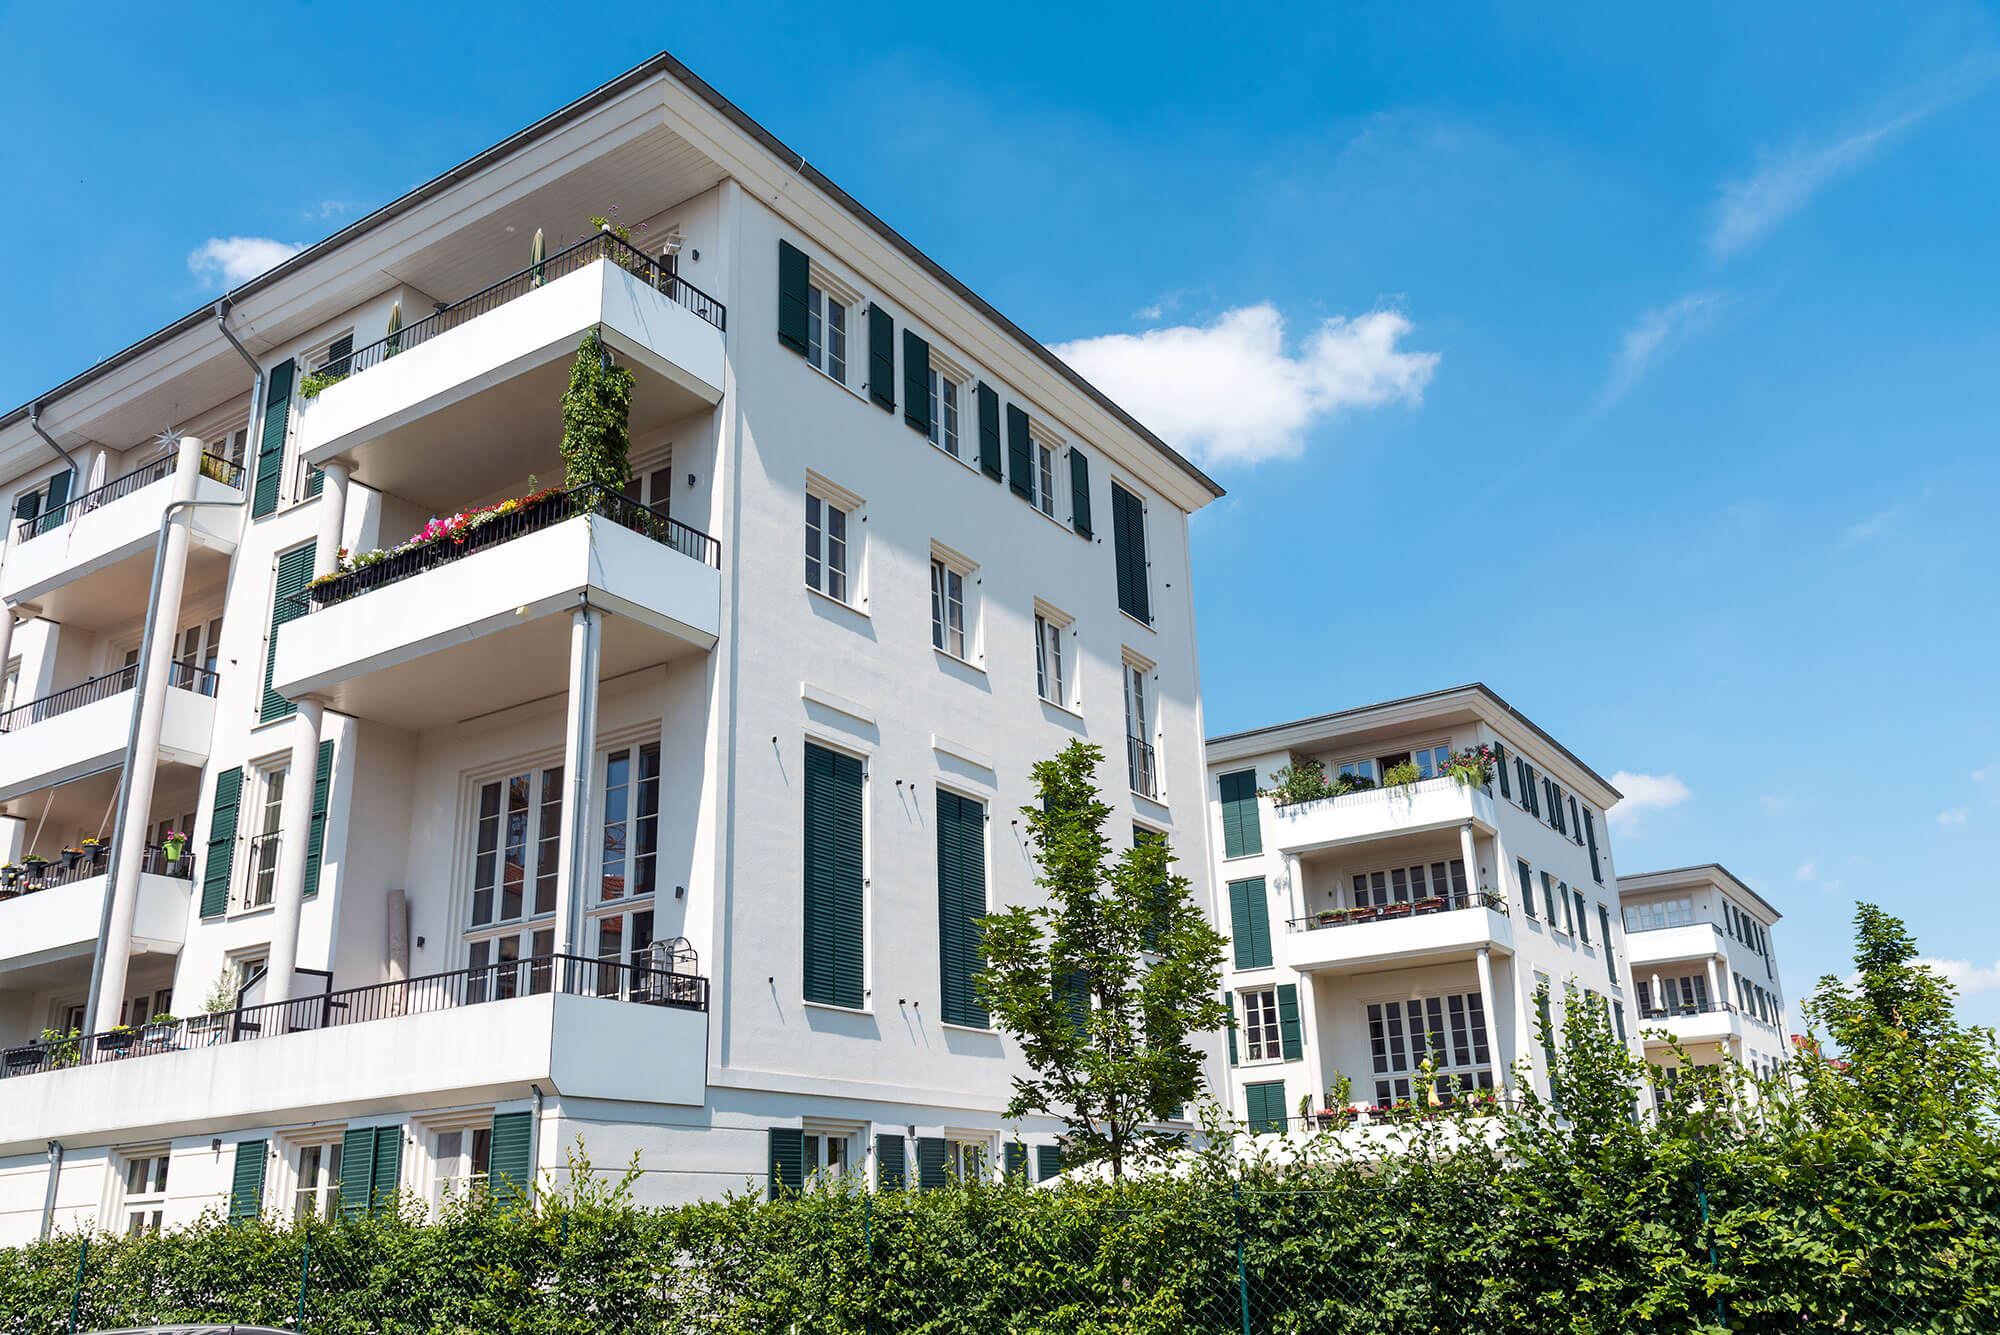 modern multi family houses in berlin PF32UKA - Purchasing and managing an investment property – a few fundamentals